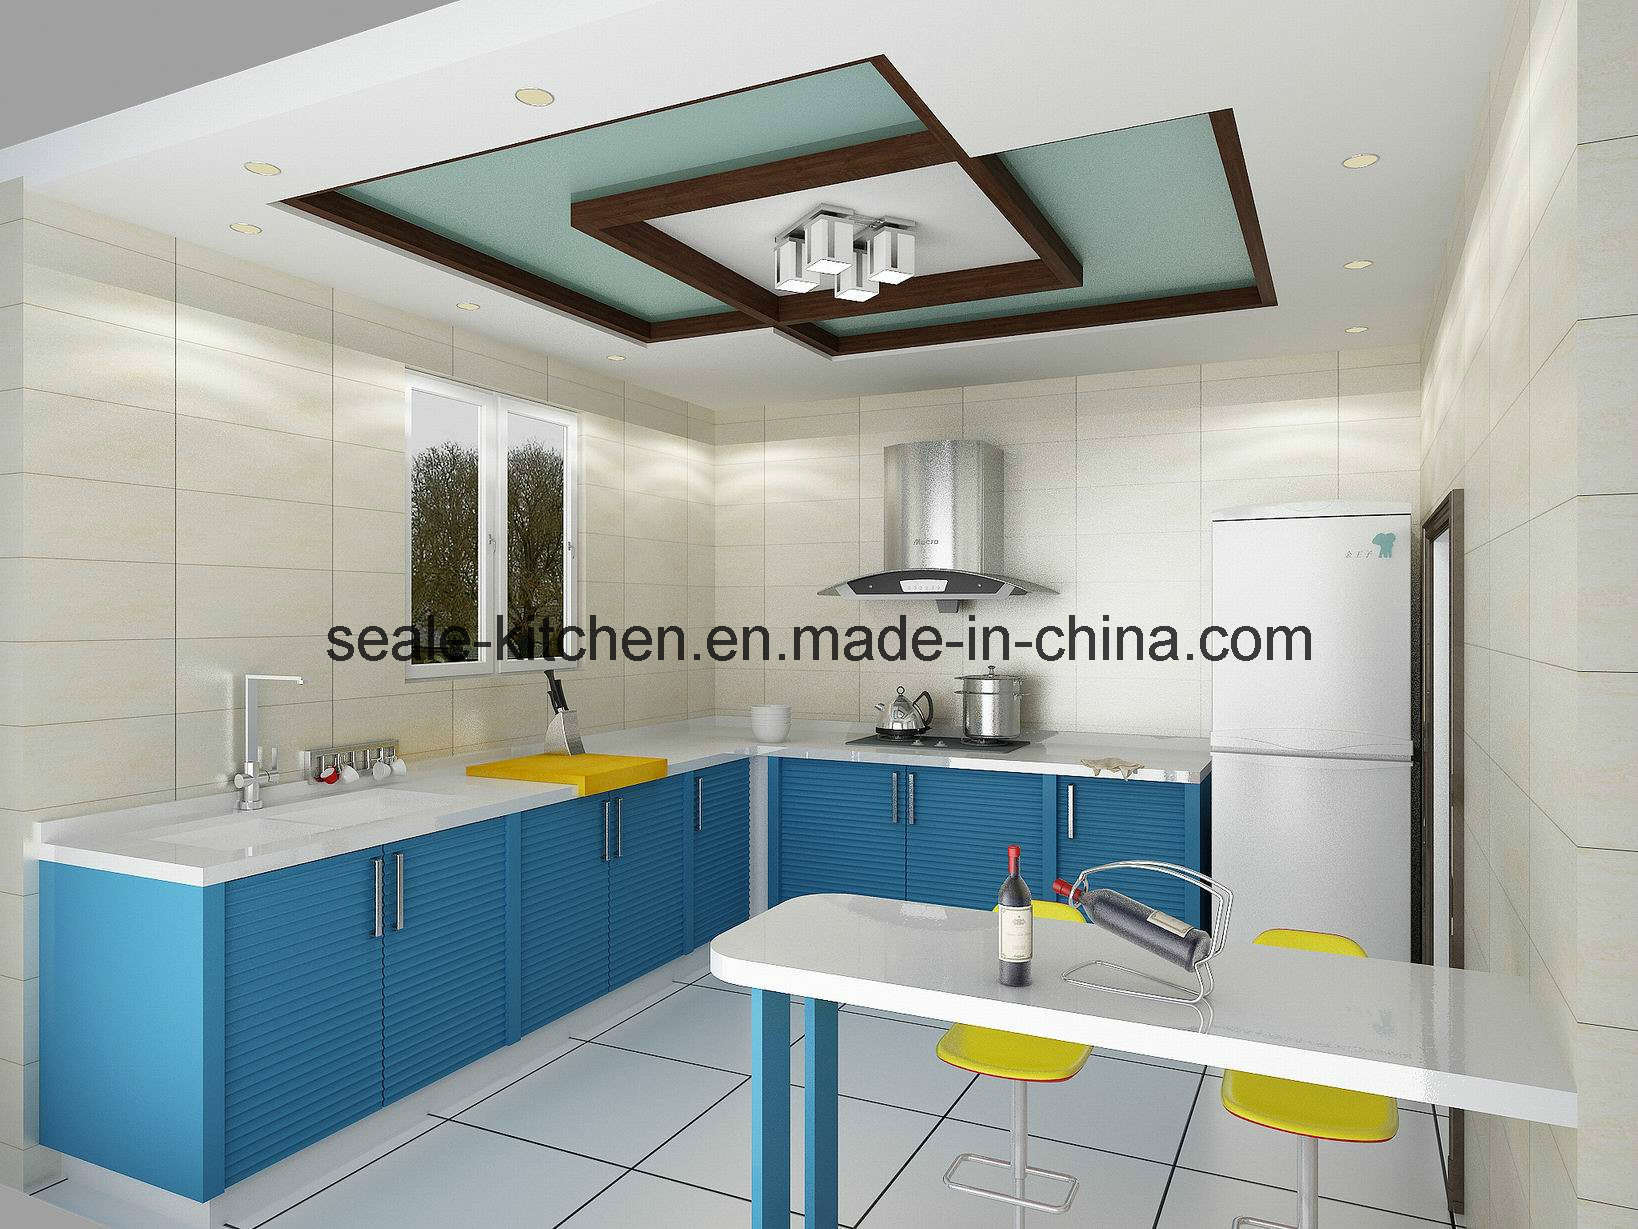 China Lacquer Kitchen Cabinet (Blue Sea) Photos & Pictures  Made in